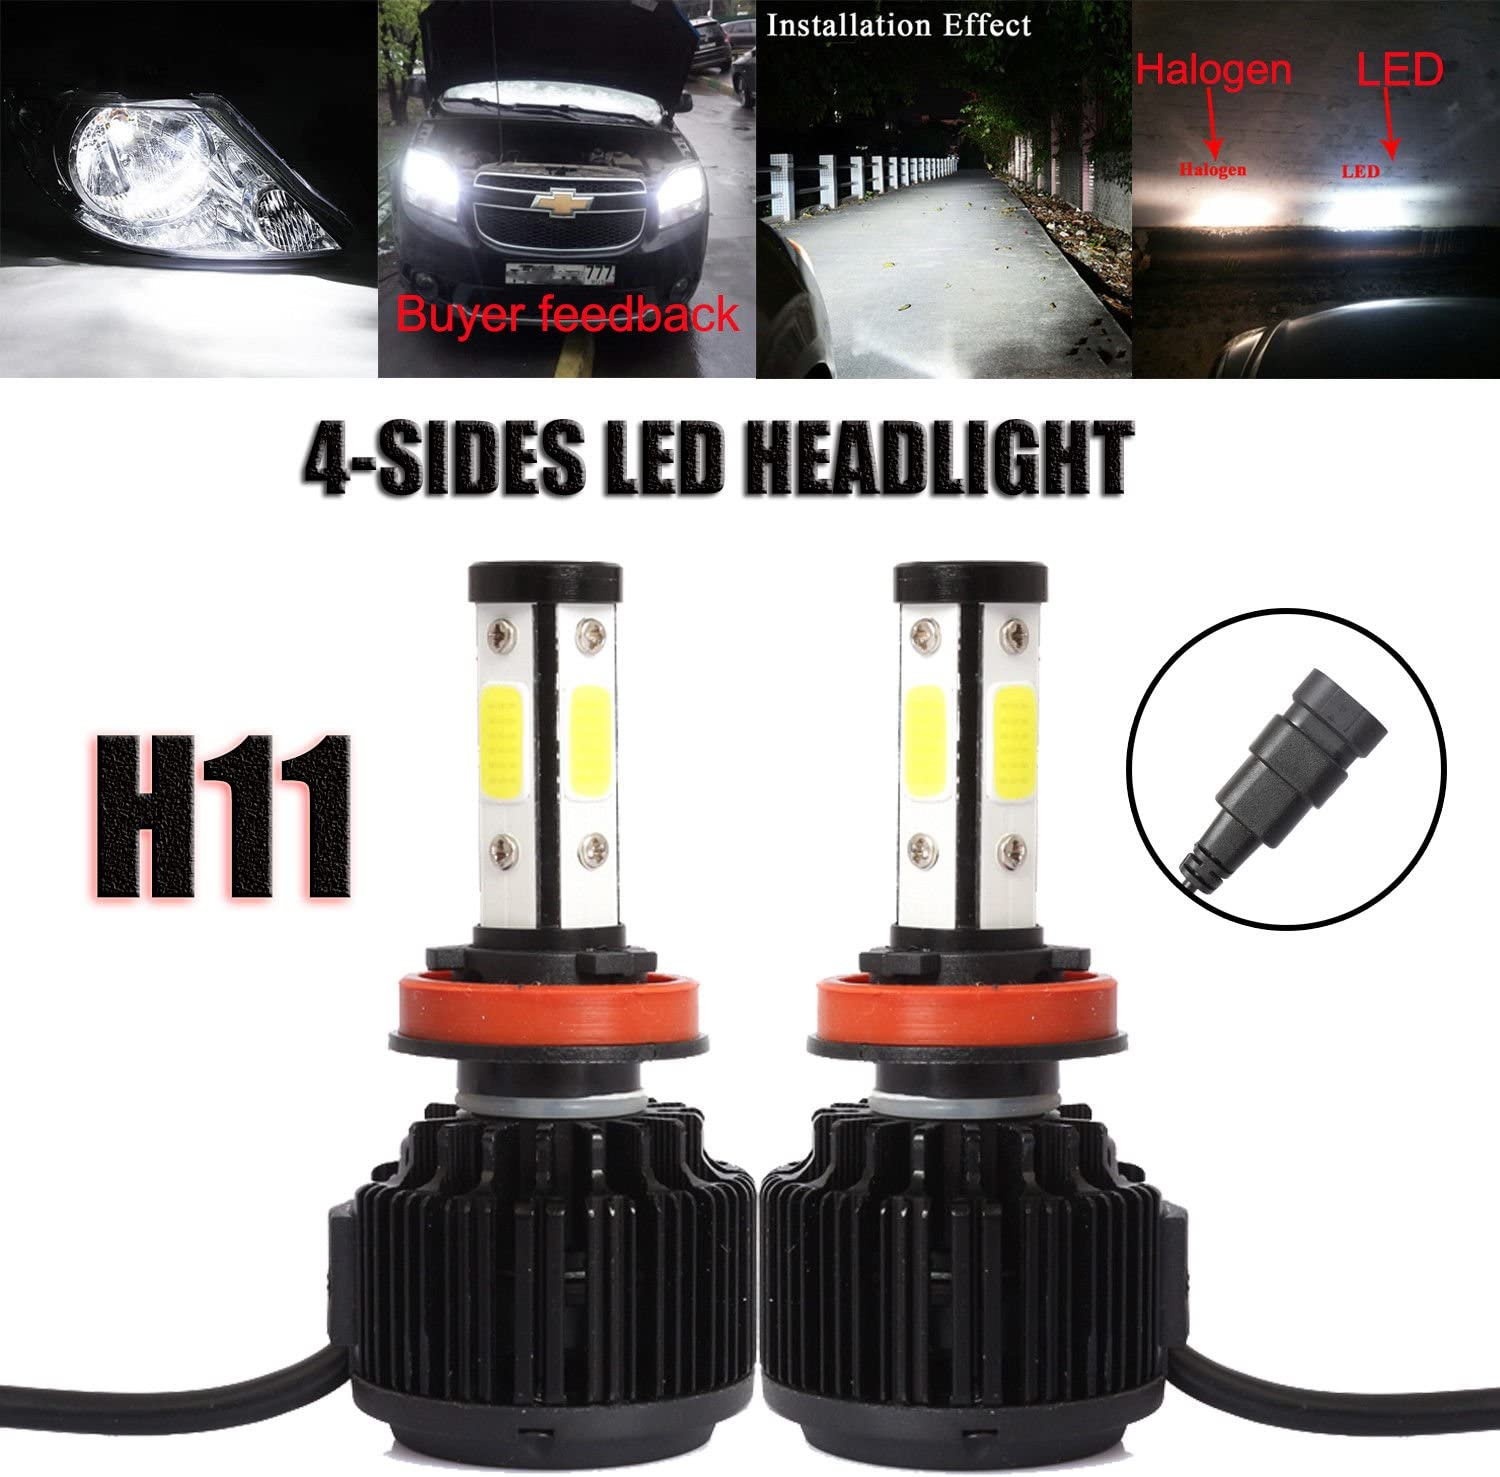 WISWIS 9005 LED Headlight Bulbs All-in-One Conversion Kit 6000K Cool White 200W 20000Lms Per Pair New Version Mini Size with COB LED Chips Super Bright High Beam